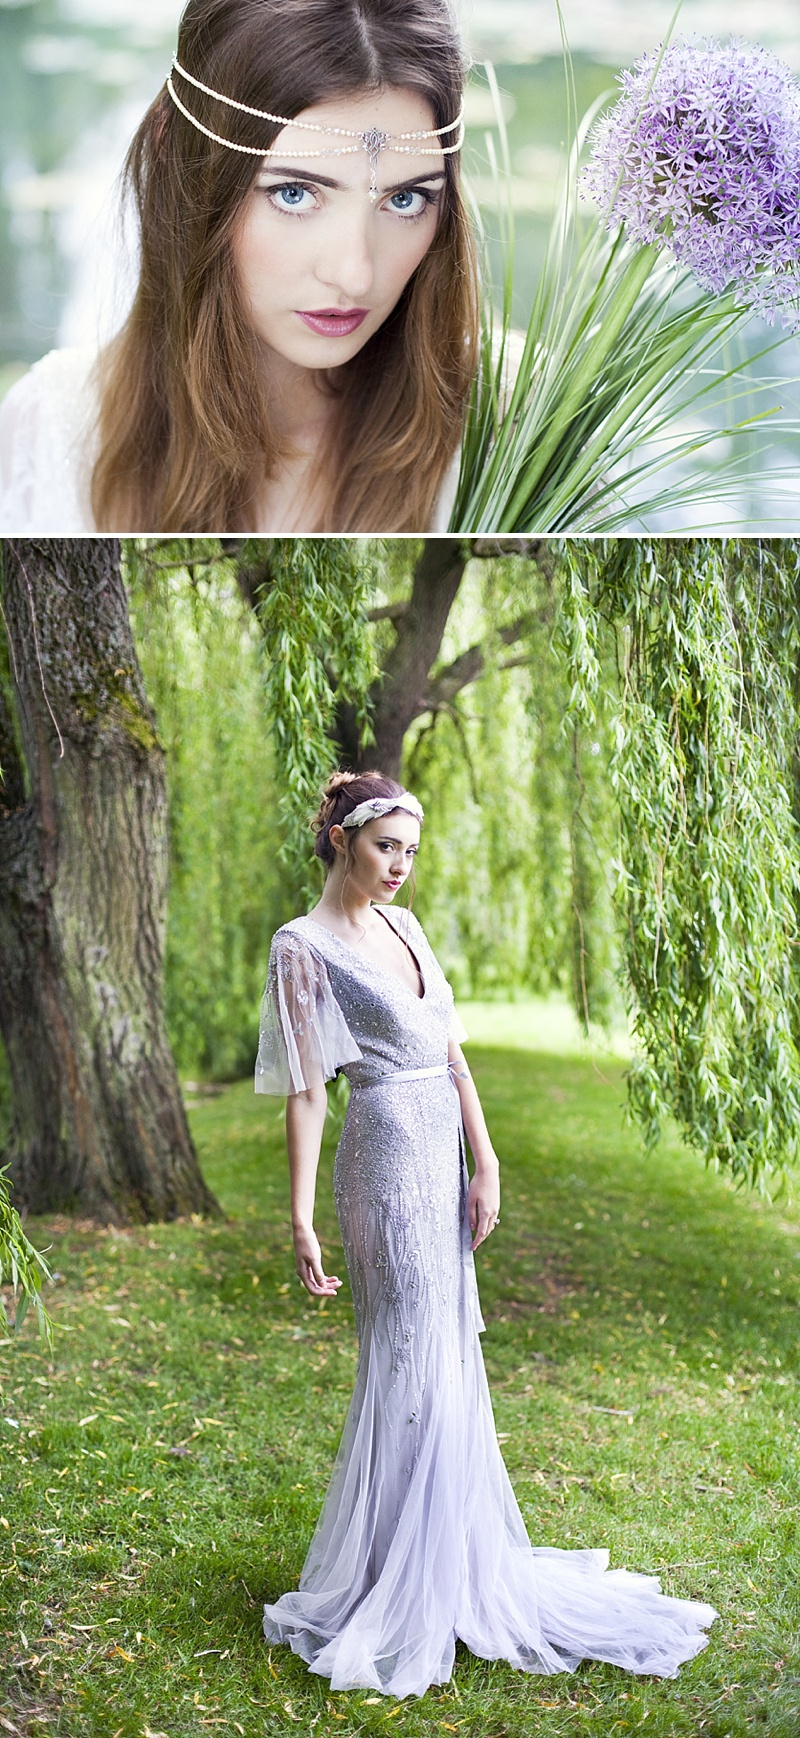 Inspiration Shoot Featuring Donna Crain Headpieces With A Bridal Make Up Product Recommendations From Adele Rosie Make Up Artist Images By Cecelina Photography 0005 Heavenly Headpieces.